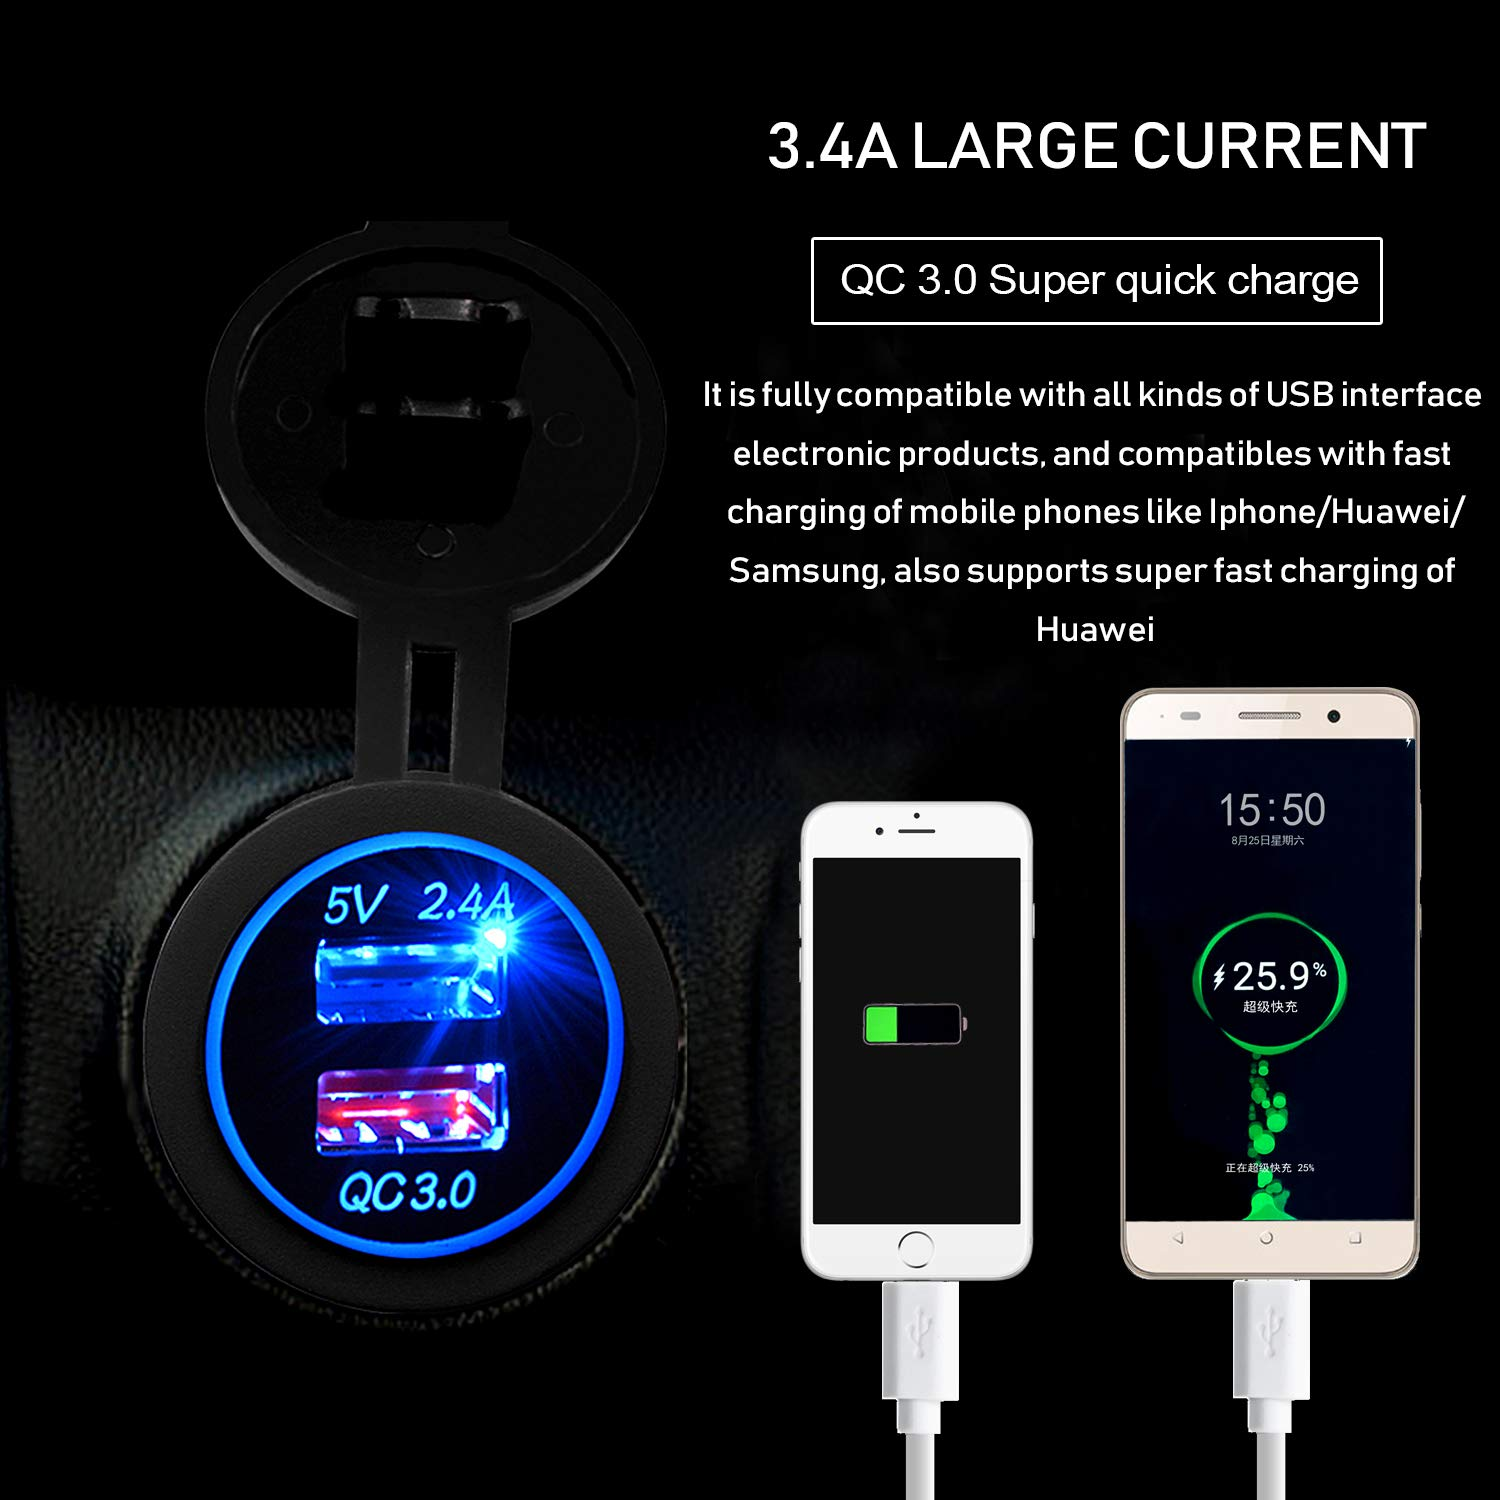 Green Led Light for Car Boat Marine Rv Motorcycle BlueFire Quick Charge 3.0 USB Charger Socket IP66 Waterproof Dual USB Car Charger Power Outlet with QC 3.0 USB Port /& 2.4A Port